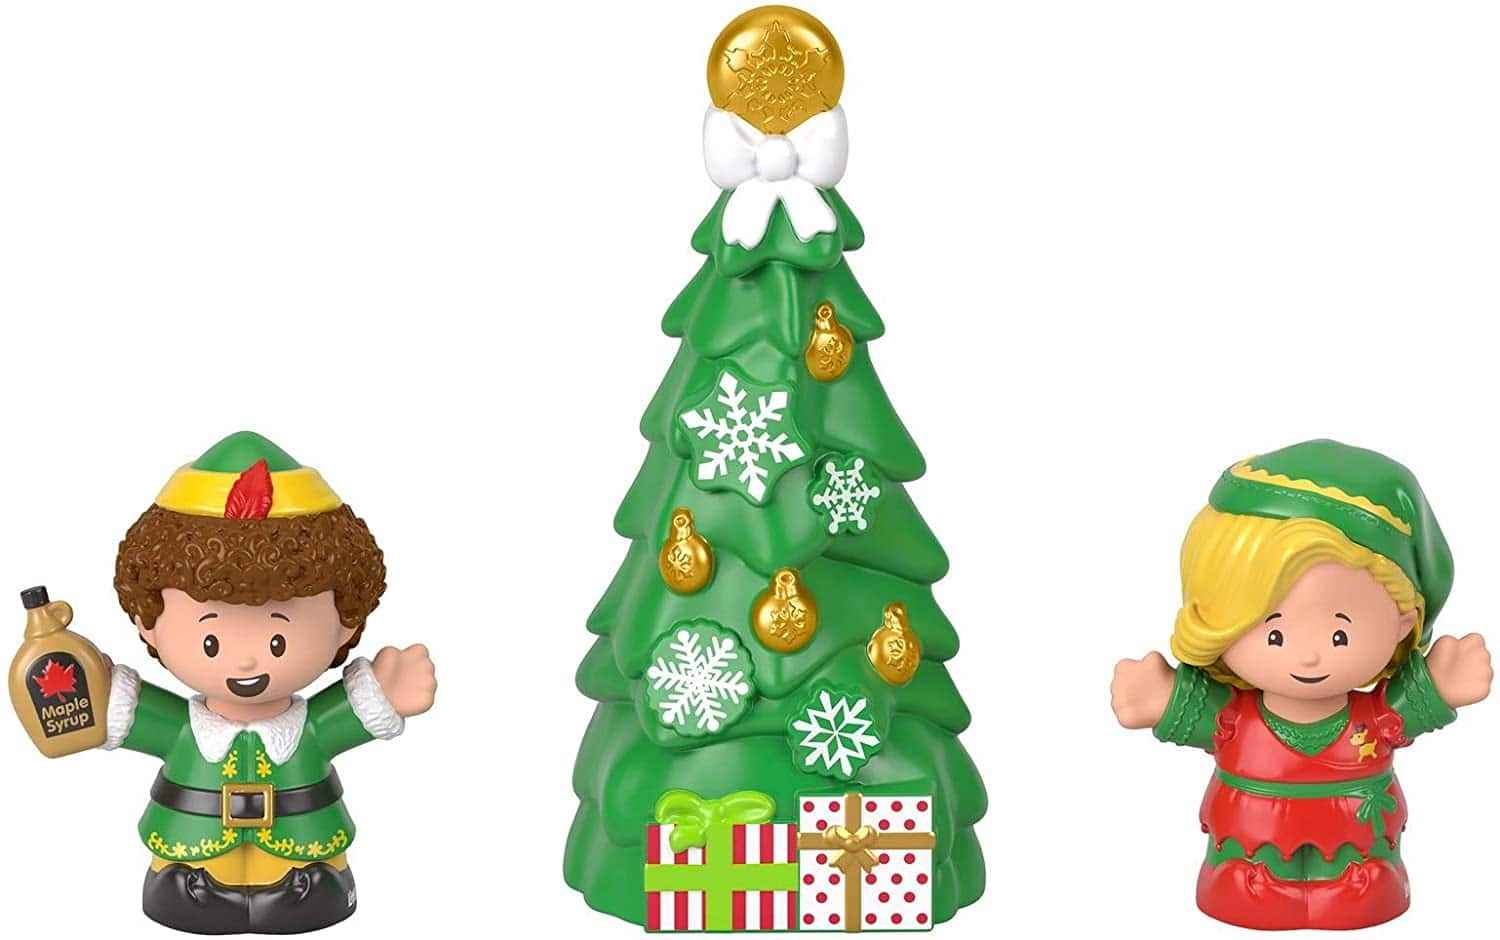 3-Piece Fisher-Price Little People Collector Elf Movie Figure Set $10.77 + Free Shipping w/ Prime or $25+